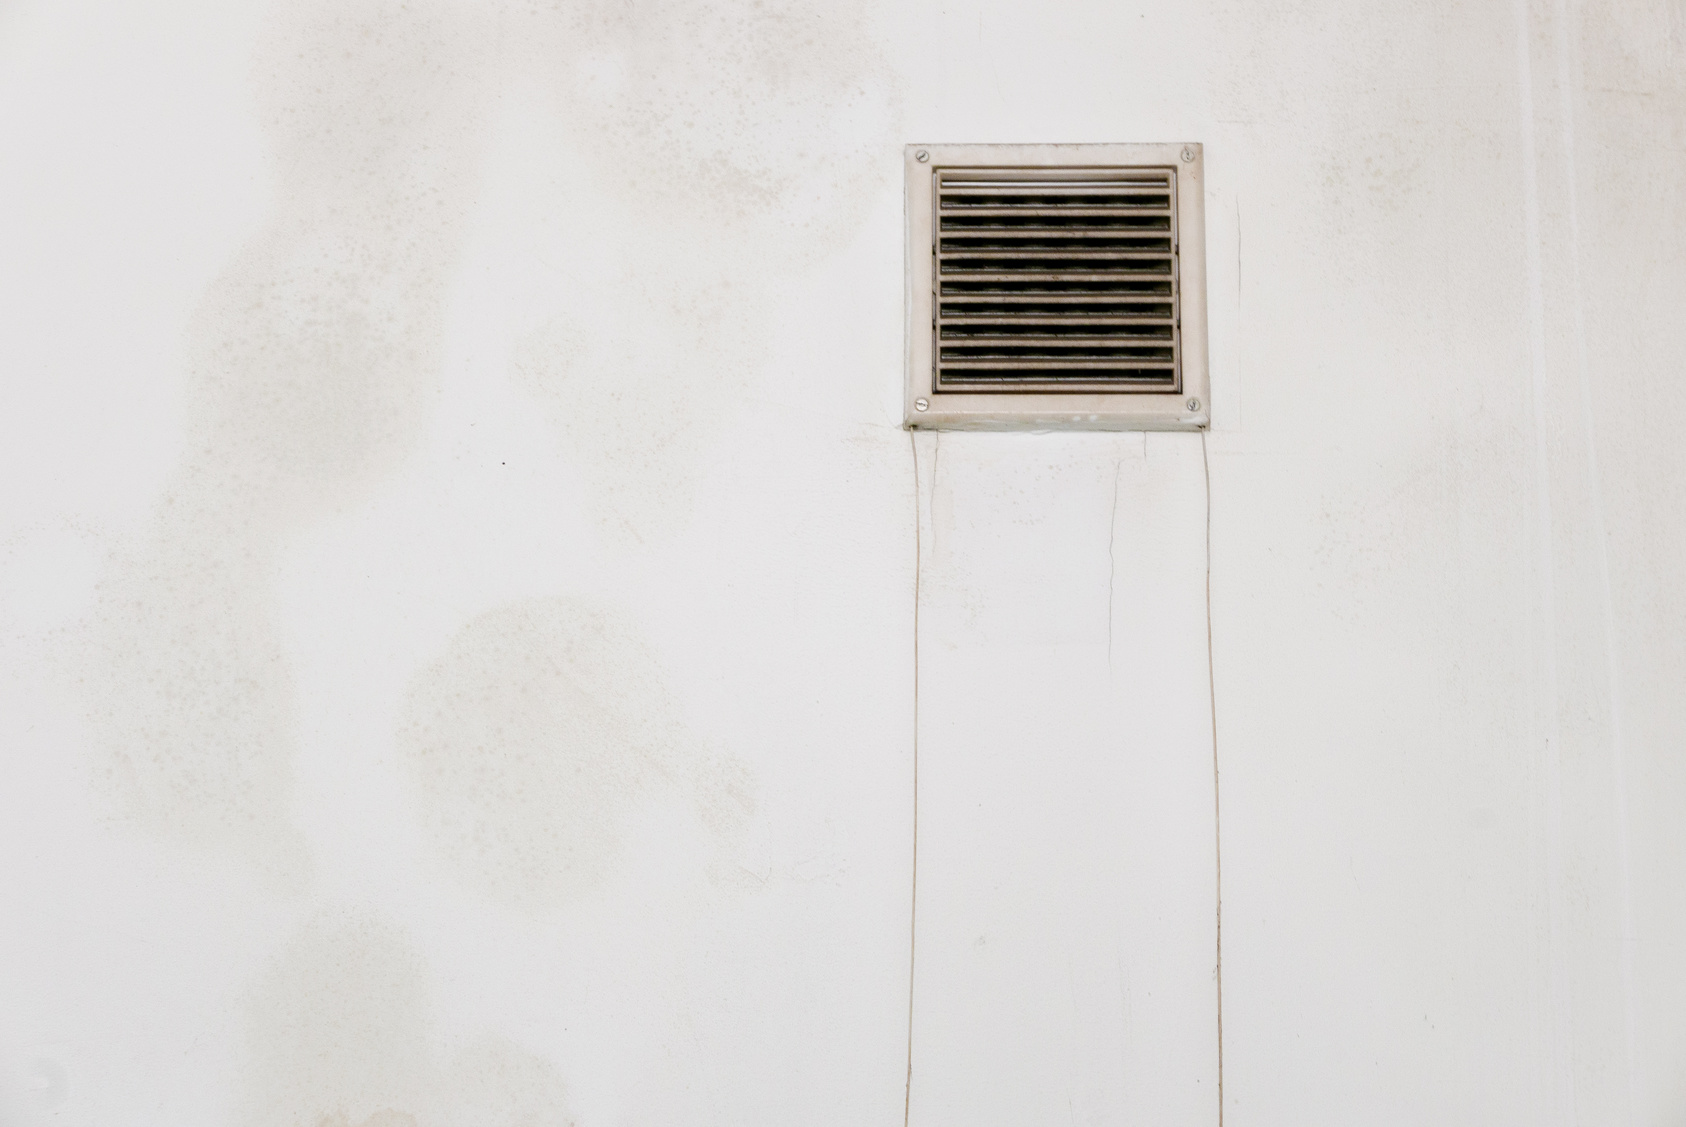 Water-Stain-Near-Air-Vent